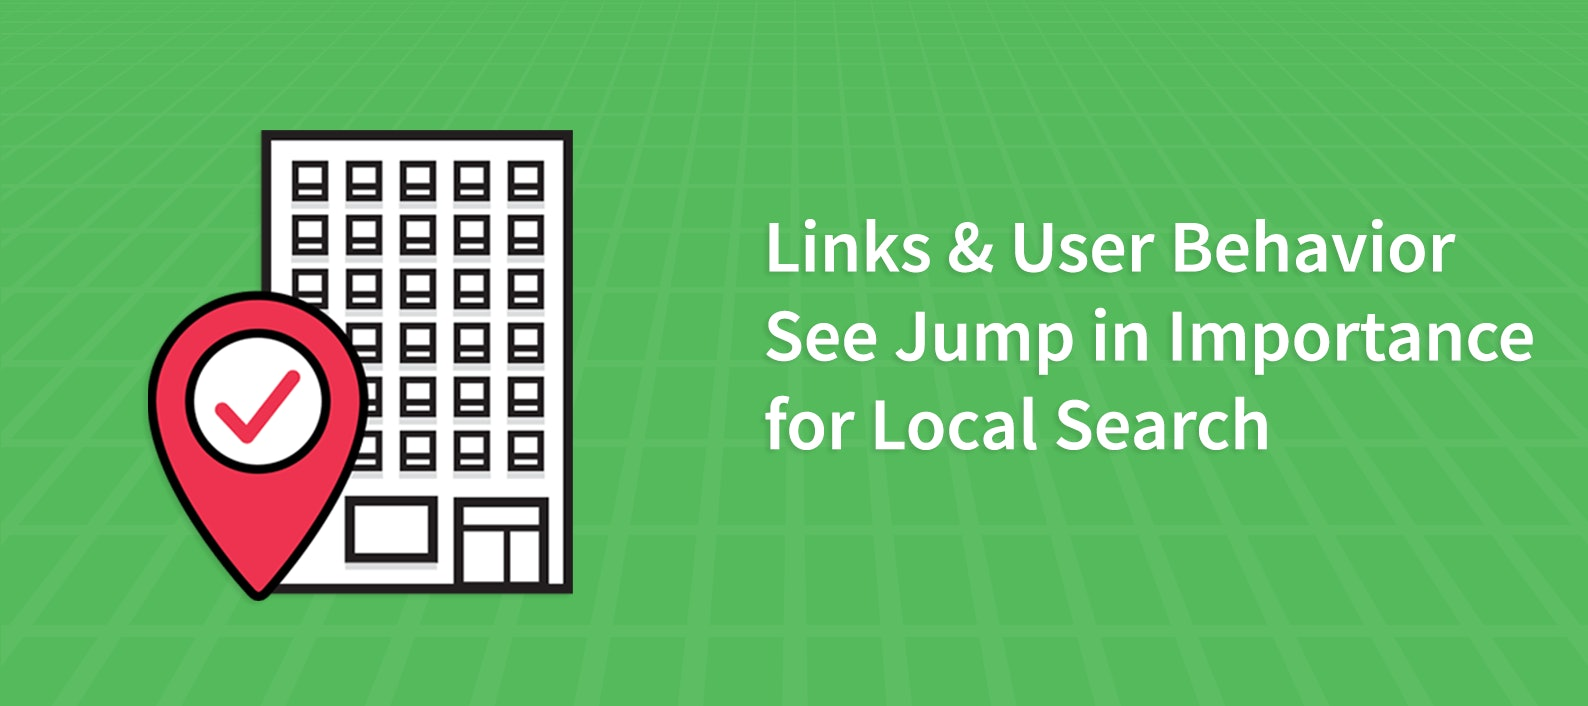 Links & User Behavior See Jump in Importance for Local Search